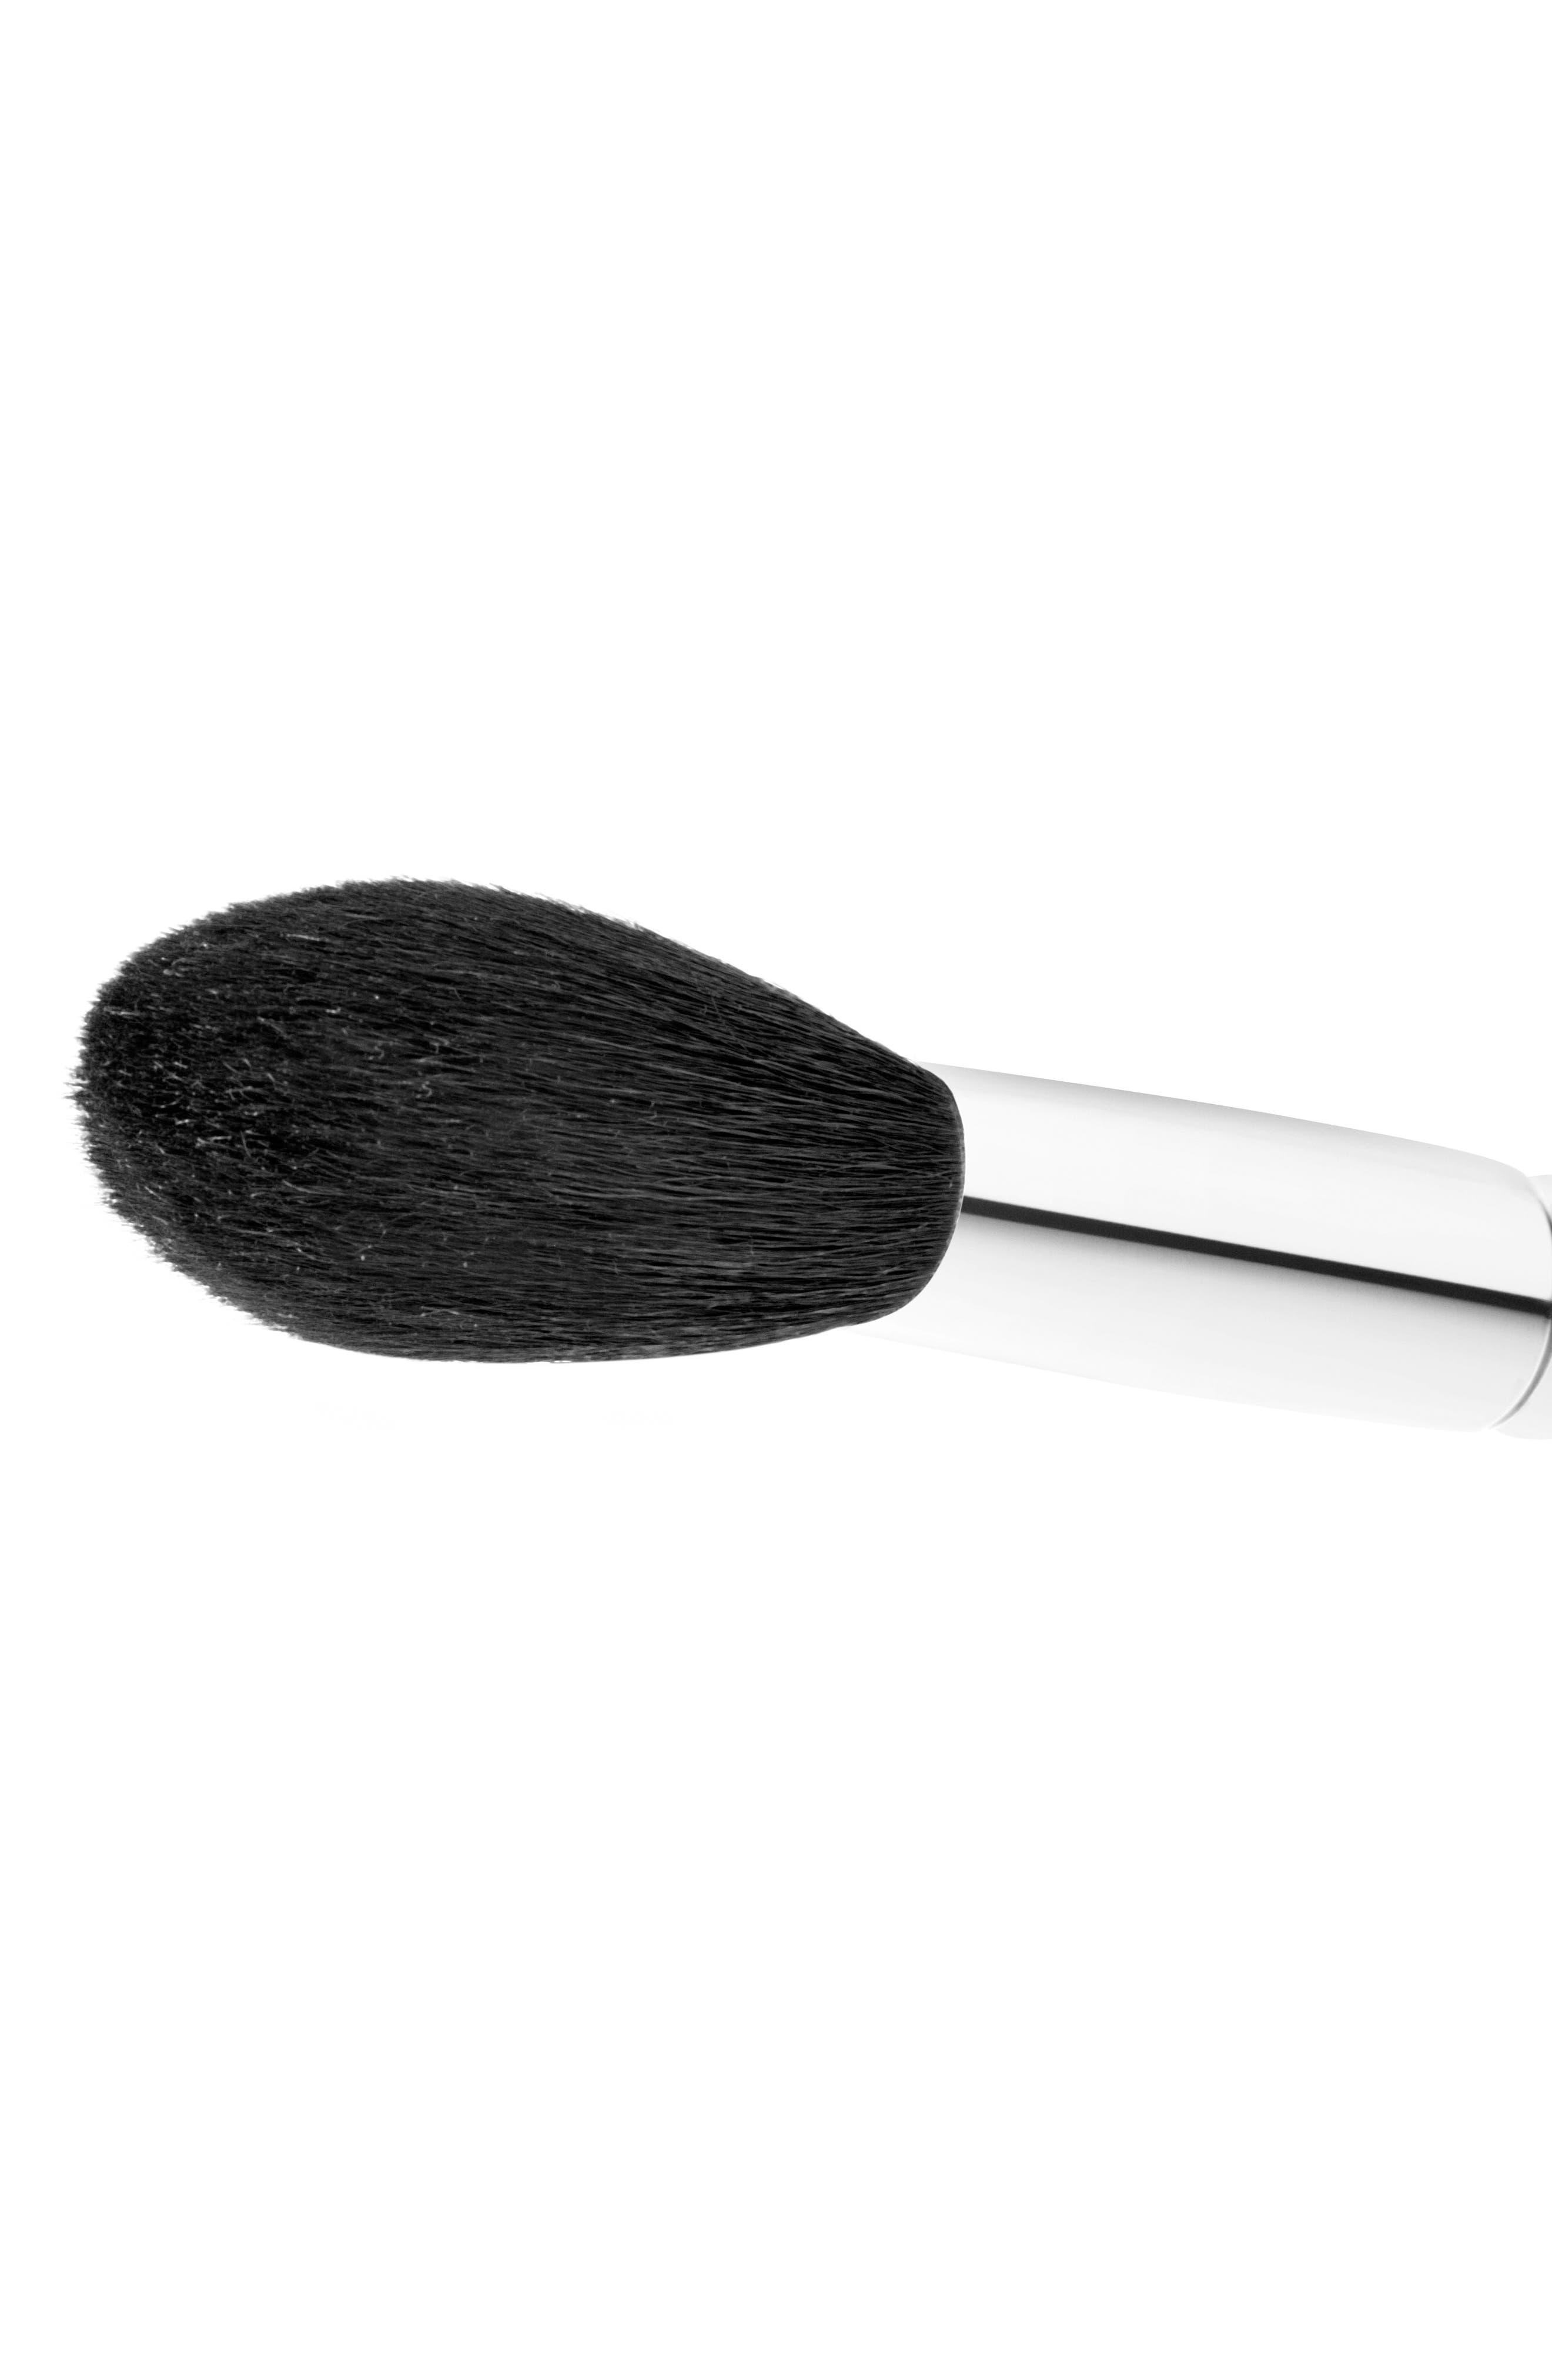 MAC 150S Synthetic Large Powder Brush,                             Alternate thumbnail 2, color,                             No Color